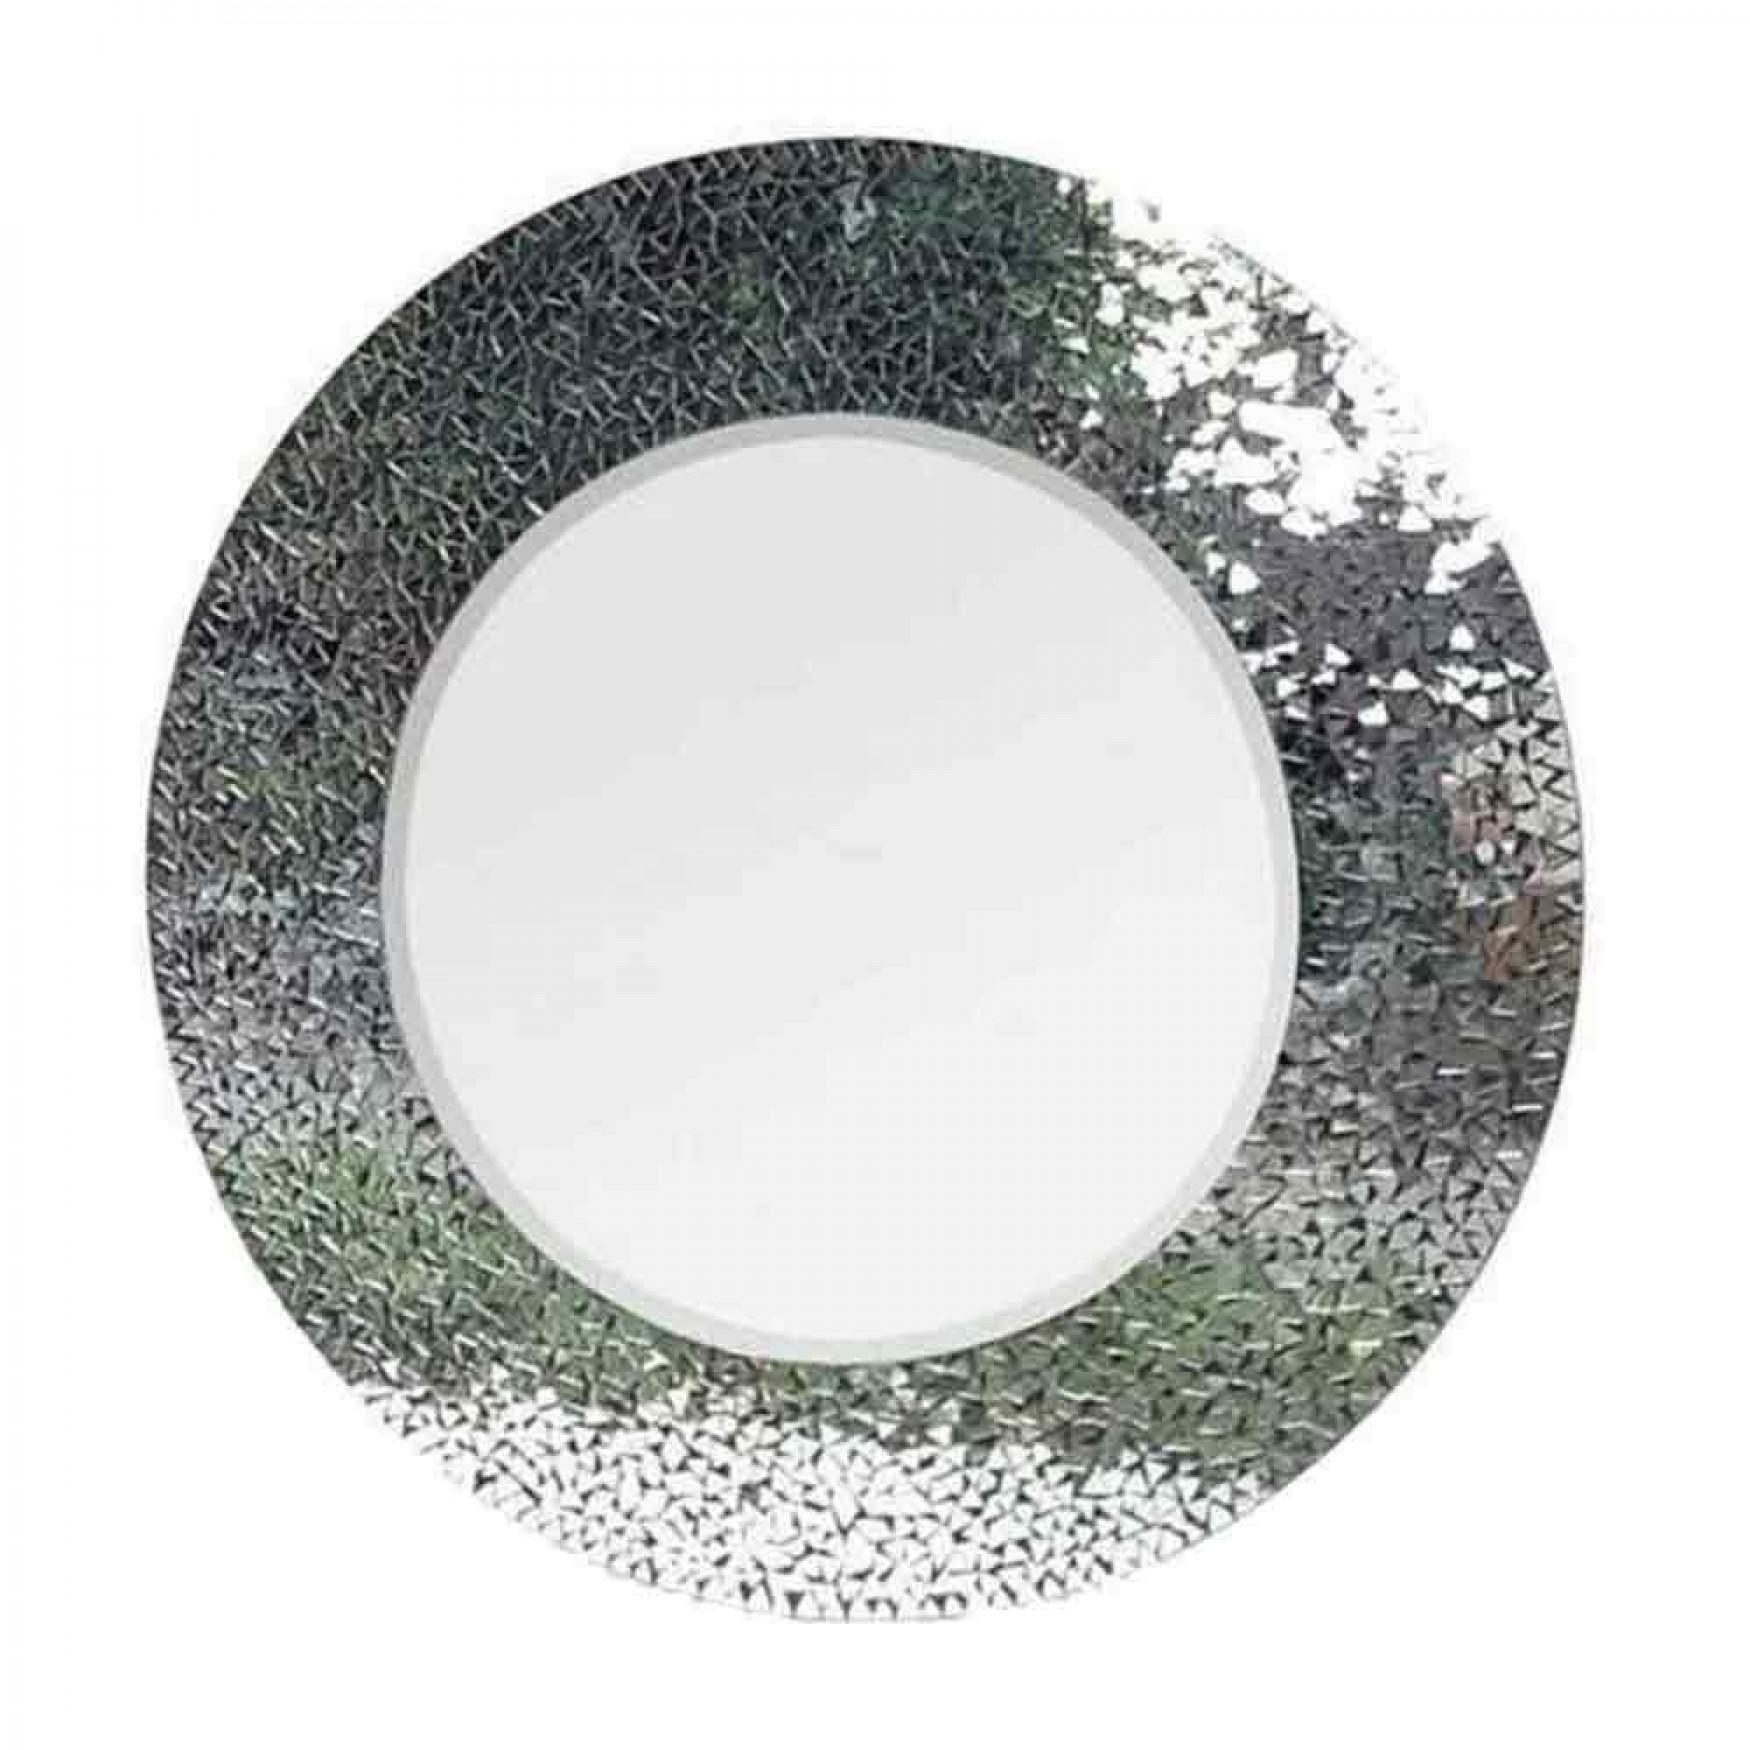 Grand Designs Round Mosaic Mirror Throughout Round Mosaic Mirrors (Image 6 of 20)